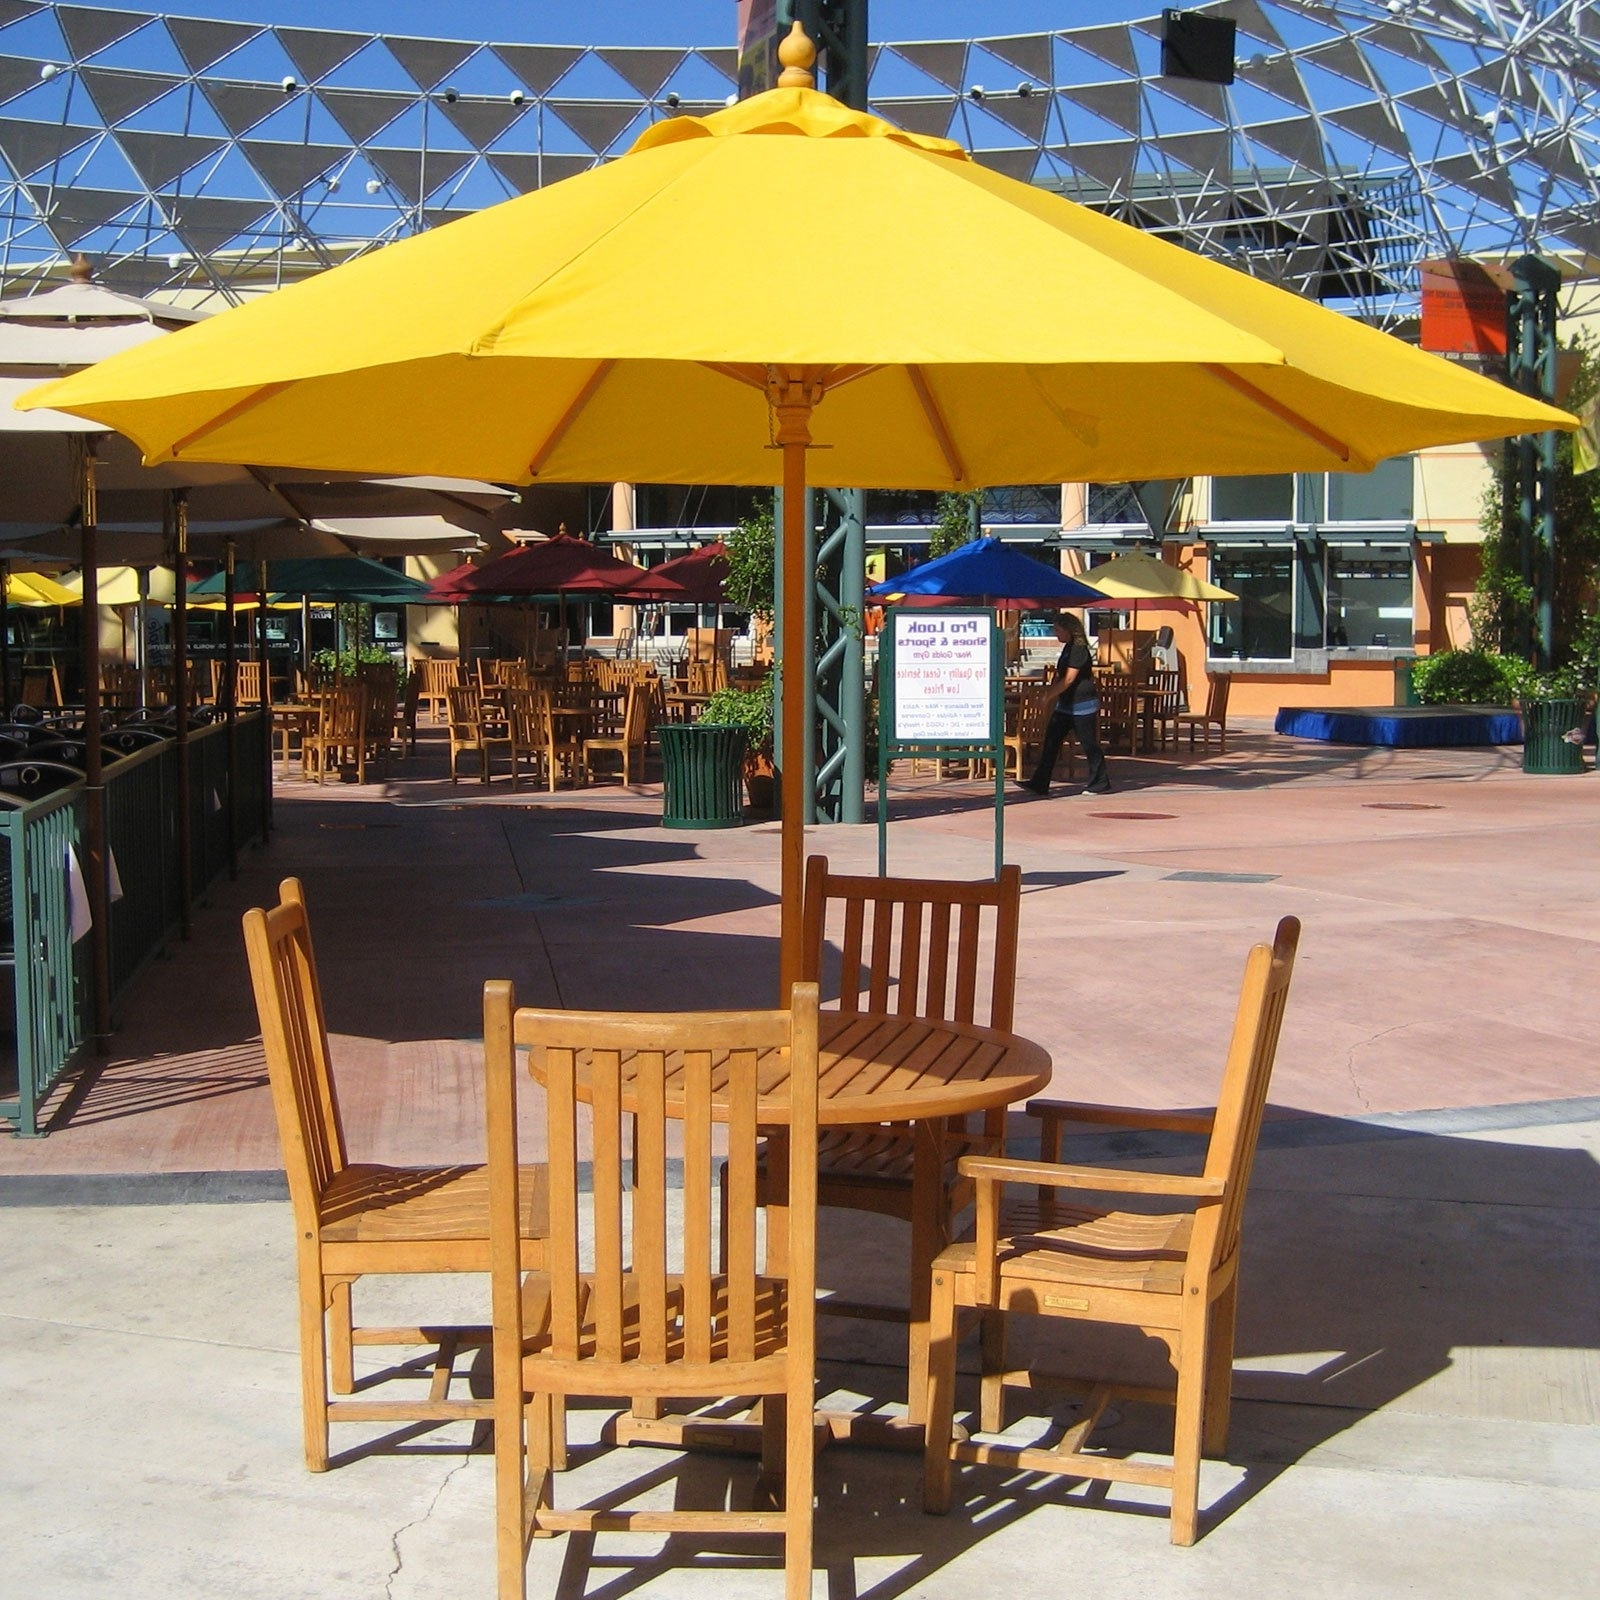 Patio Tables With Umbrellas Pertaining To Recent Tips To Choose Patio Table Umbrella — Inspire Furniture Ideas (View 11 of 20)